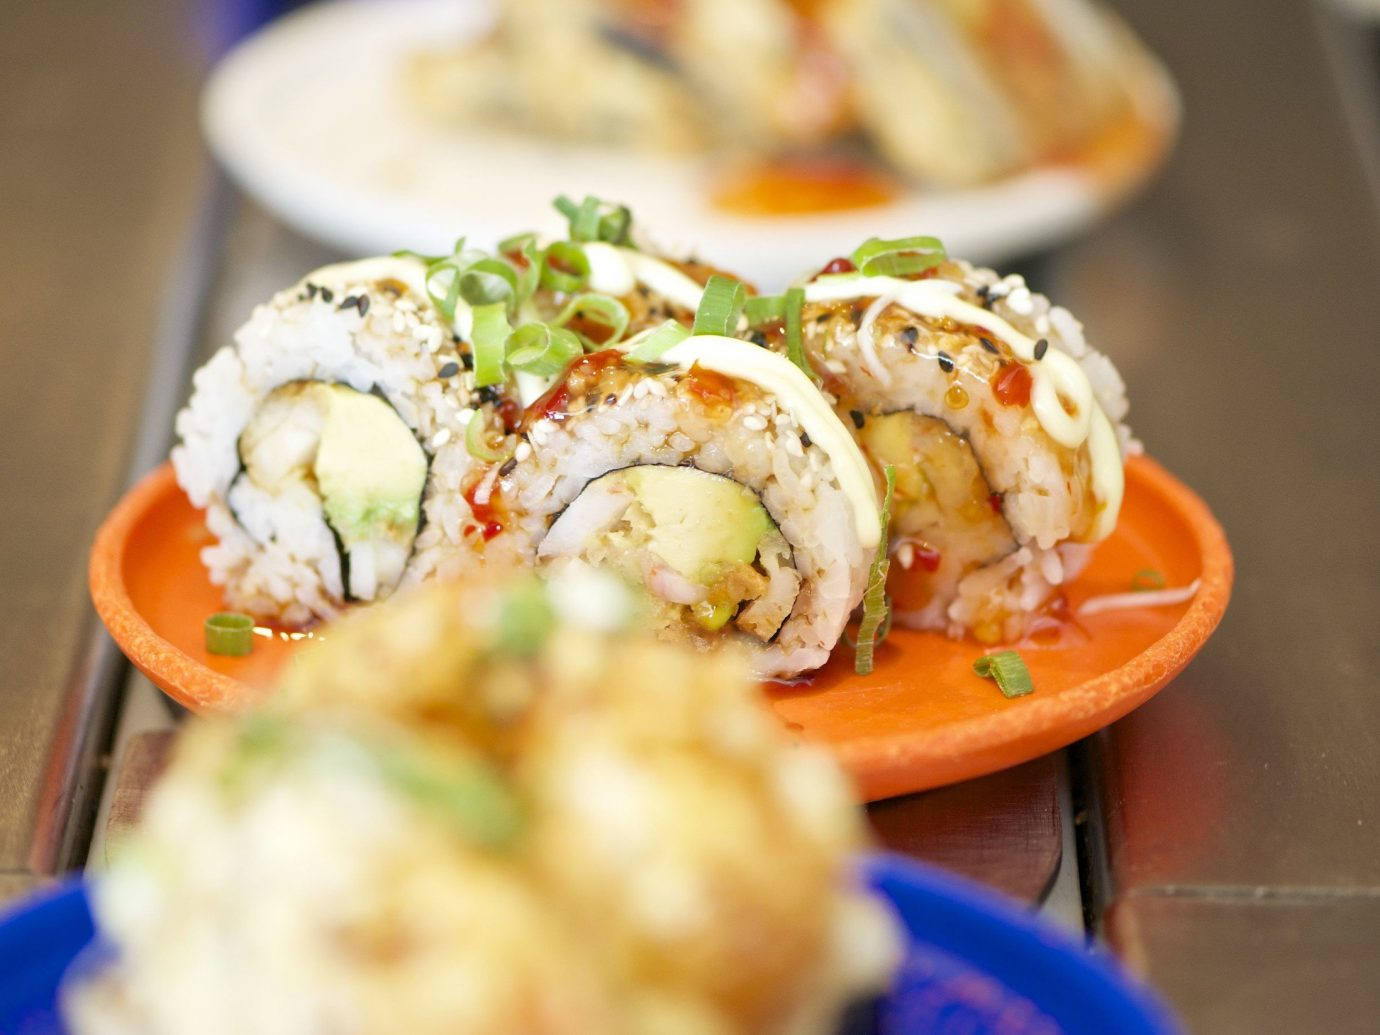 Food + Drink food dish indoor meal cuisine sushi hors d oeuvre breakfast asian food produce Seafood several